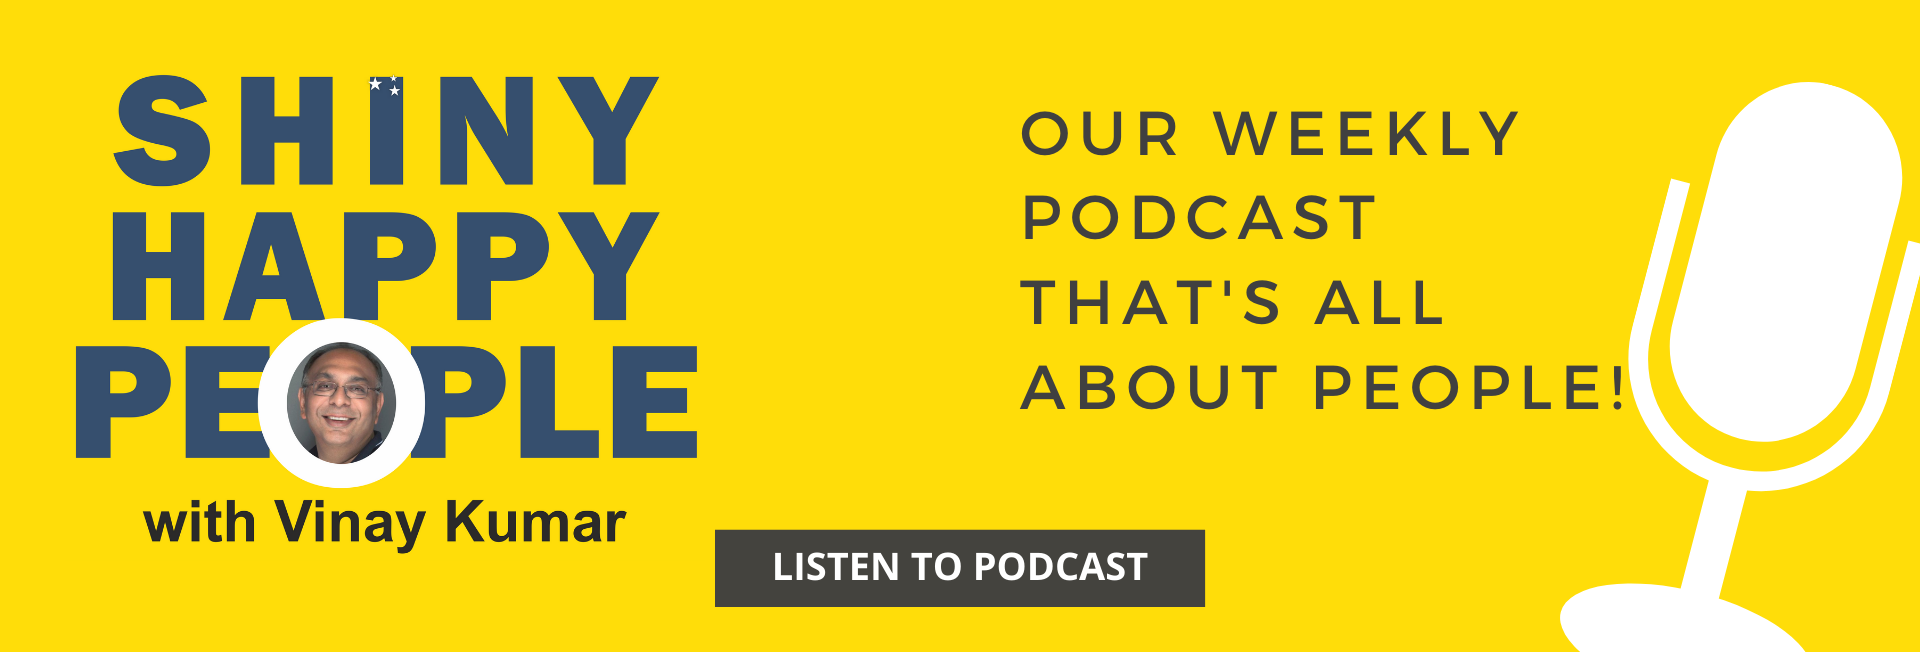 Shiny Happy People Weekly Podcast